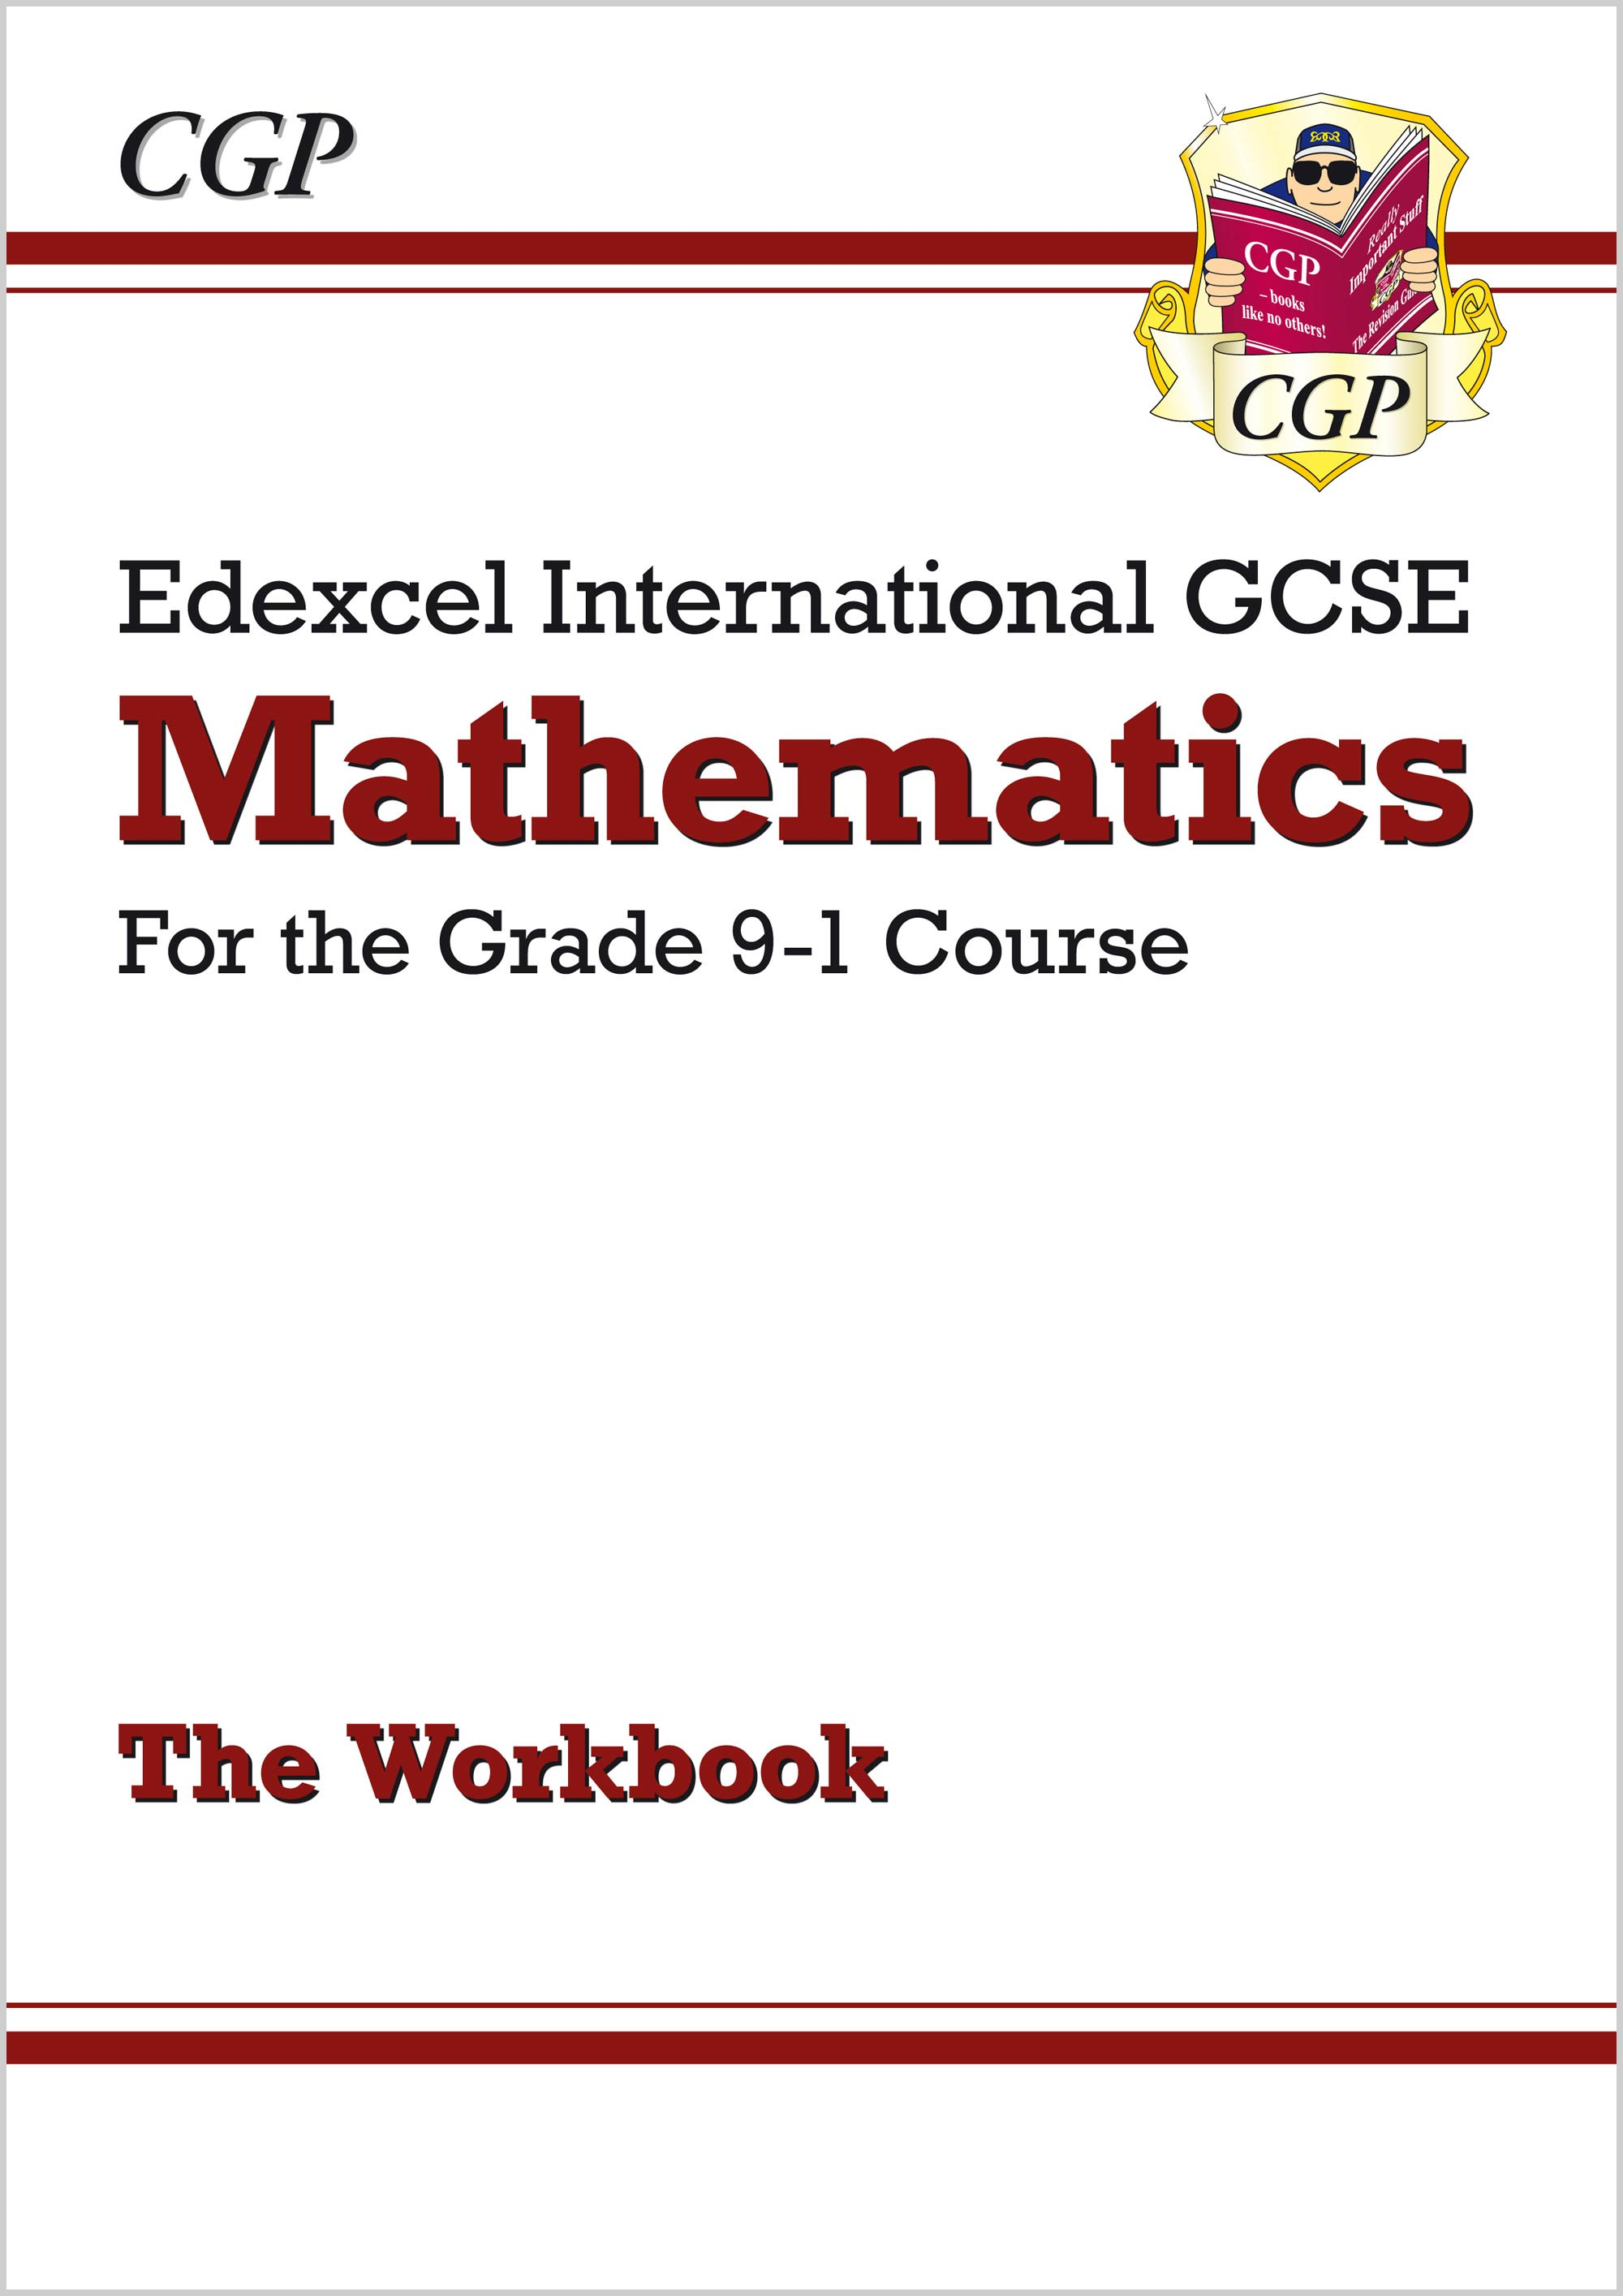 MEWI44 - Edexcel International GCSE Maths Workbook - for the Grade 9-1 Course